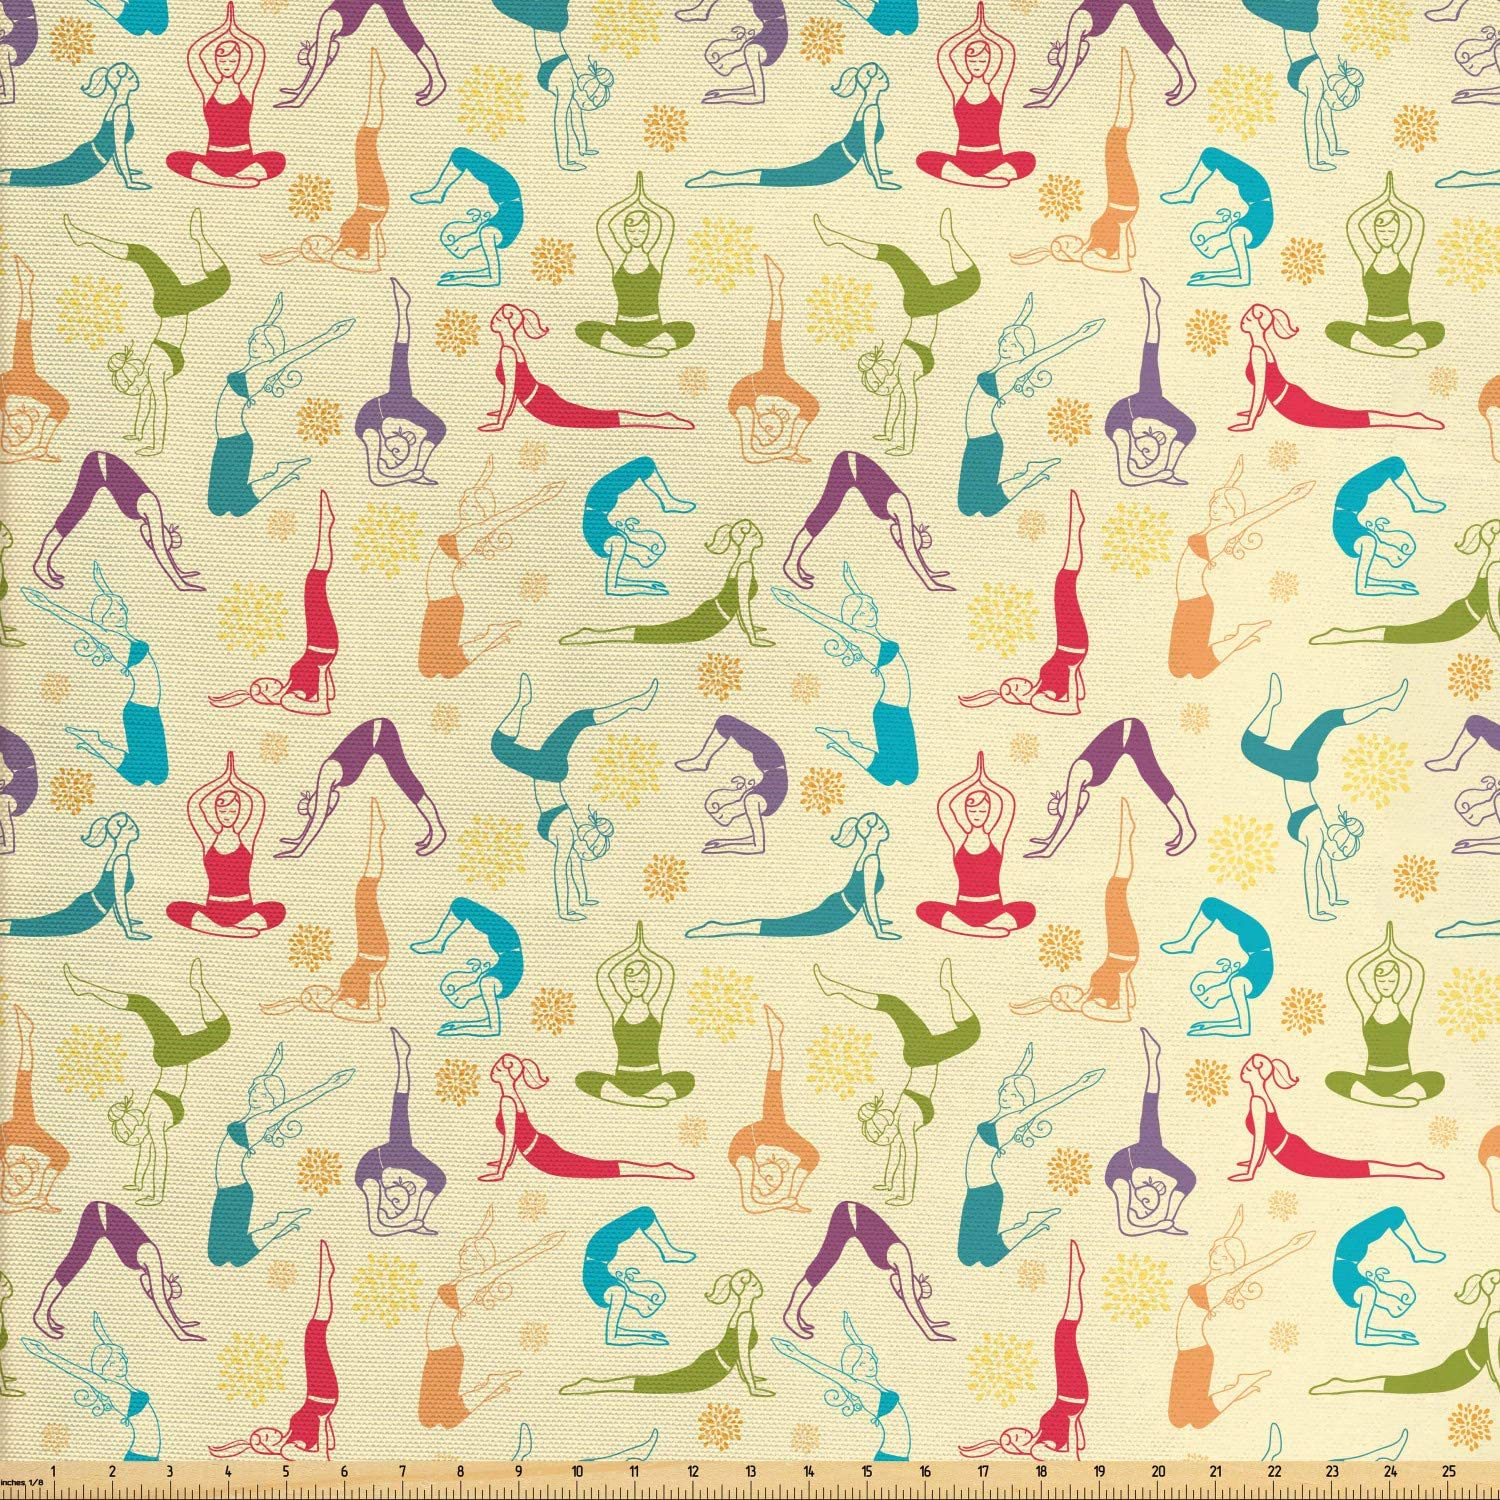 Ambesonne Yoga Fabric by The Yard, Workout Themed Fitness Girls Pattern Abstract Meditation Postures Arrangement Asian, Decorative Fabric for Upholstery and Home Accents, 2 Yards, Multicolor